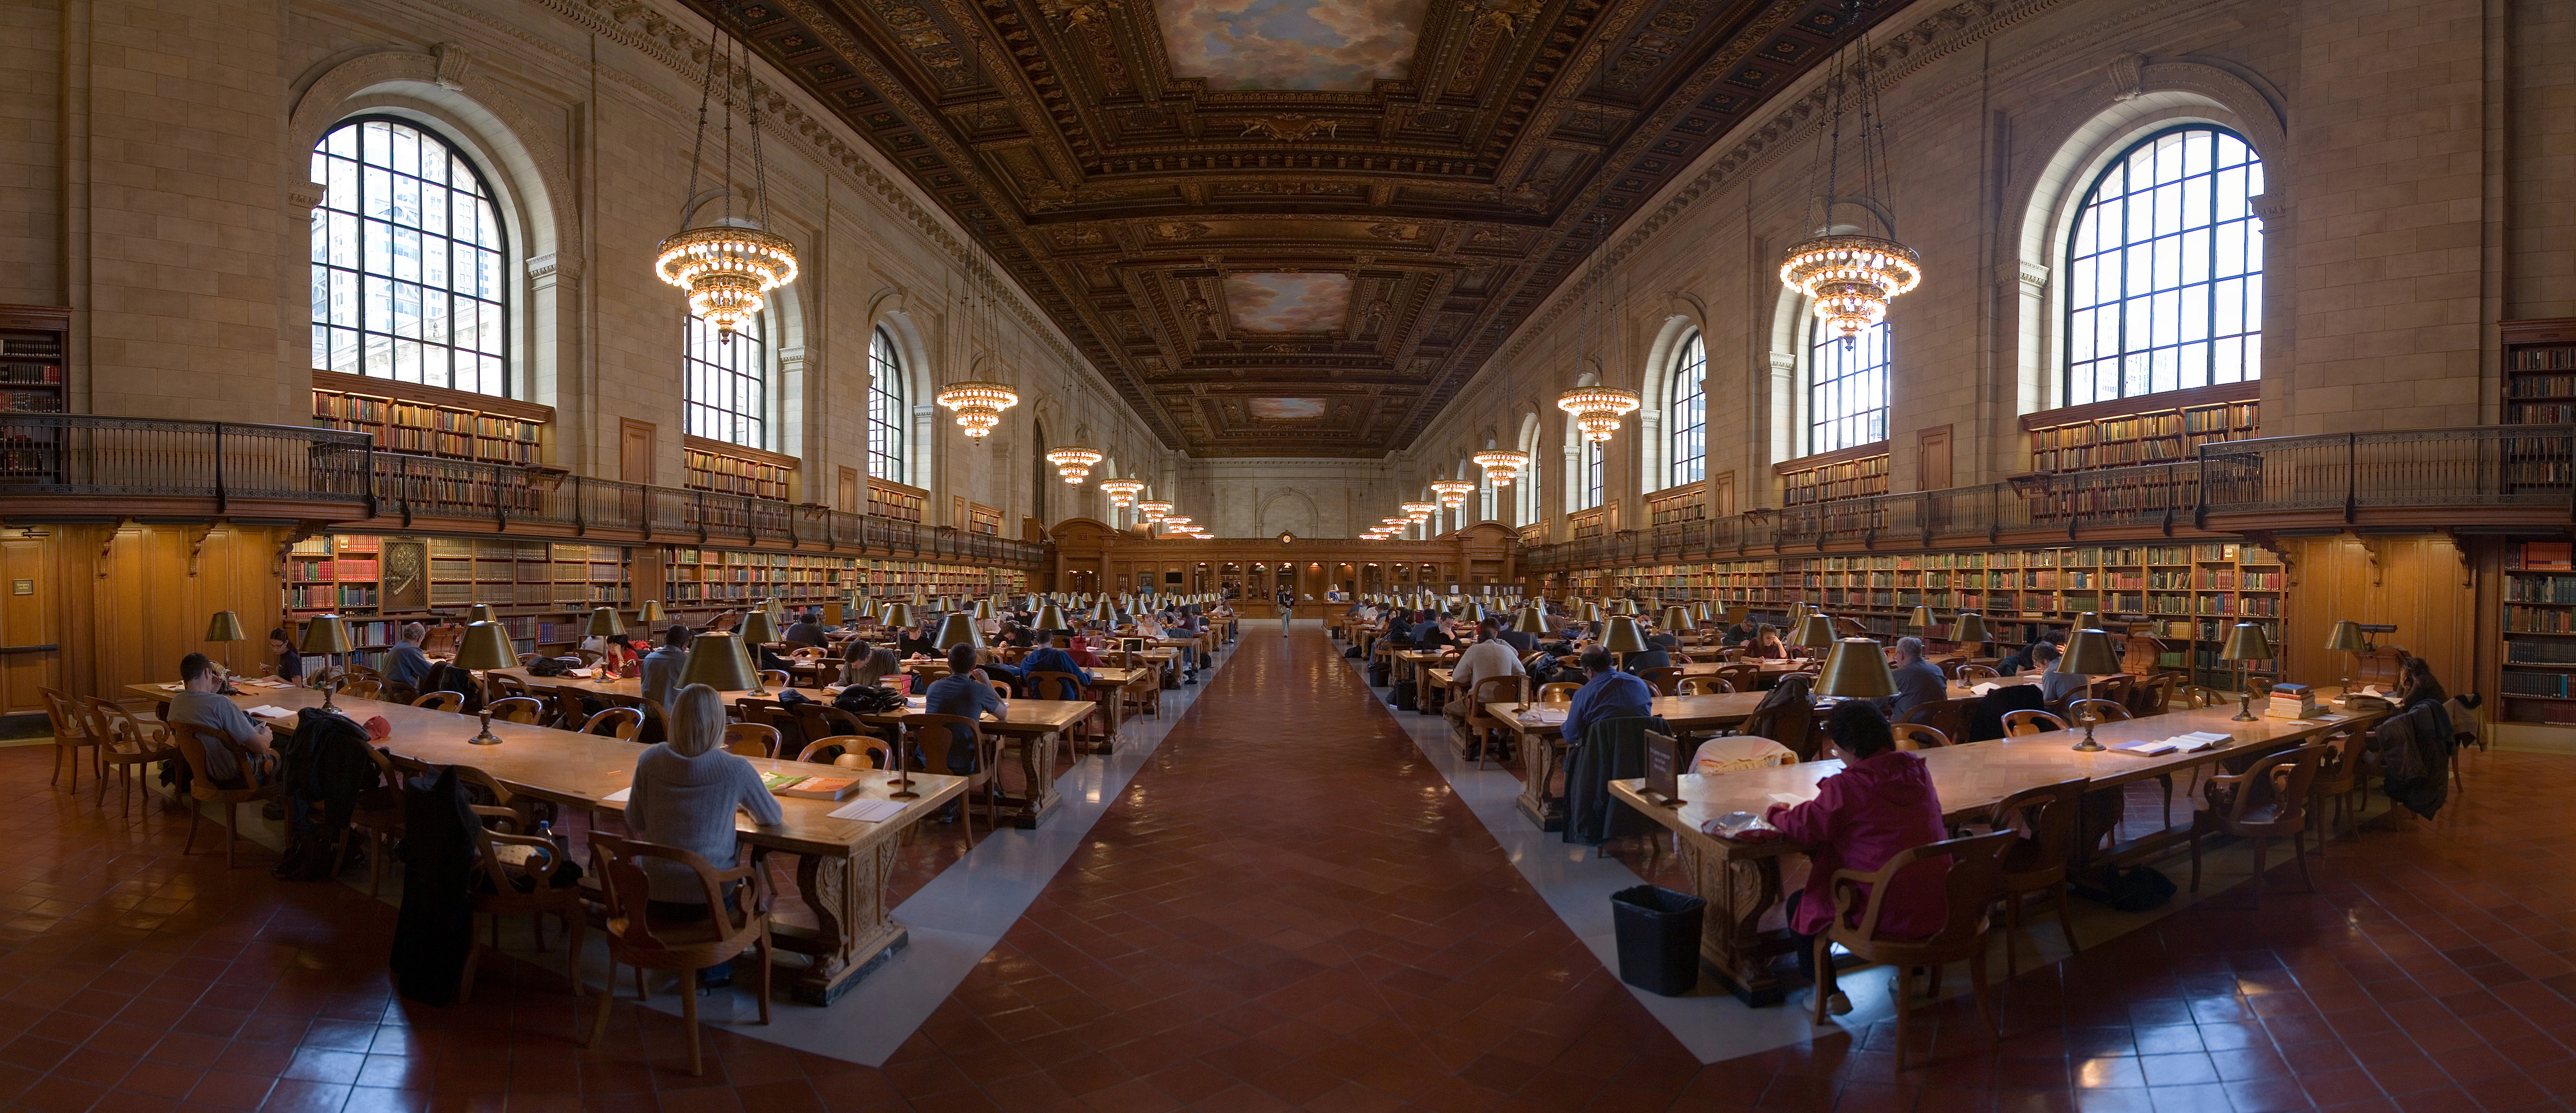 The New York Public Library v New Yorku.